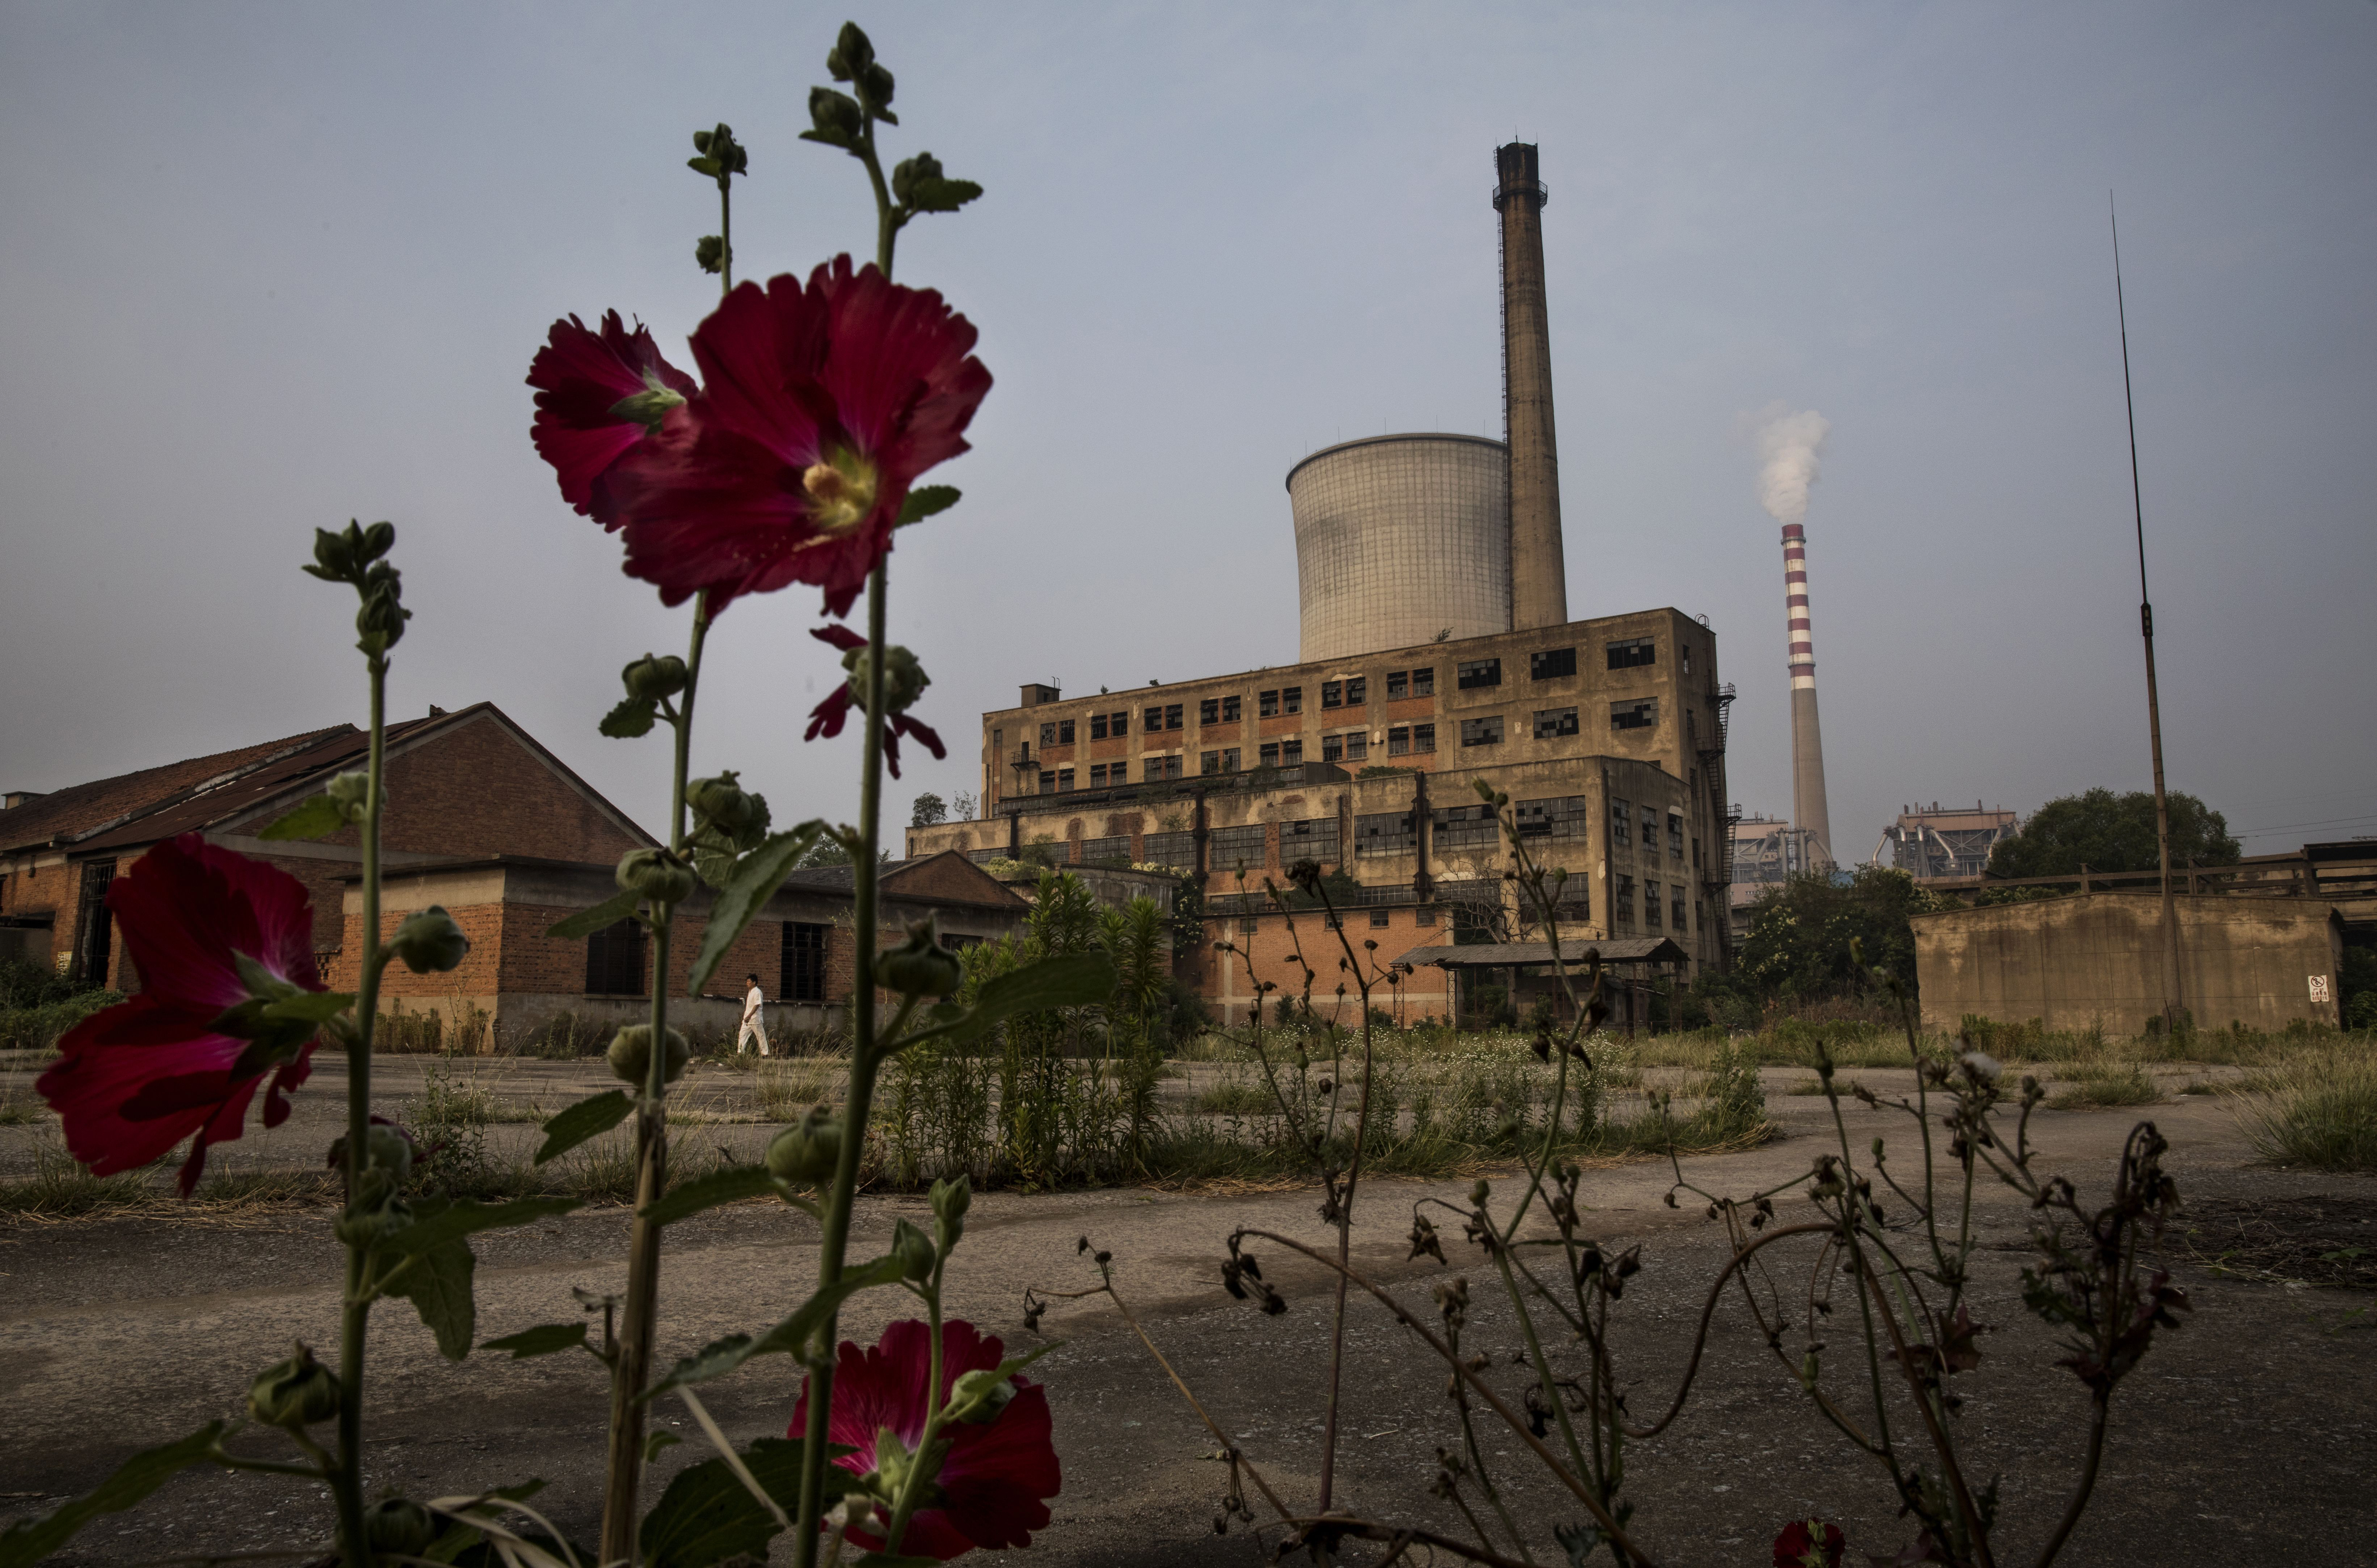 A smokestack from a coal fired power plant is seen near the site of a large floating solar farm project under construction on June 16, 2017 in Huainan, Anhui province, China.